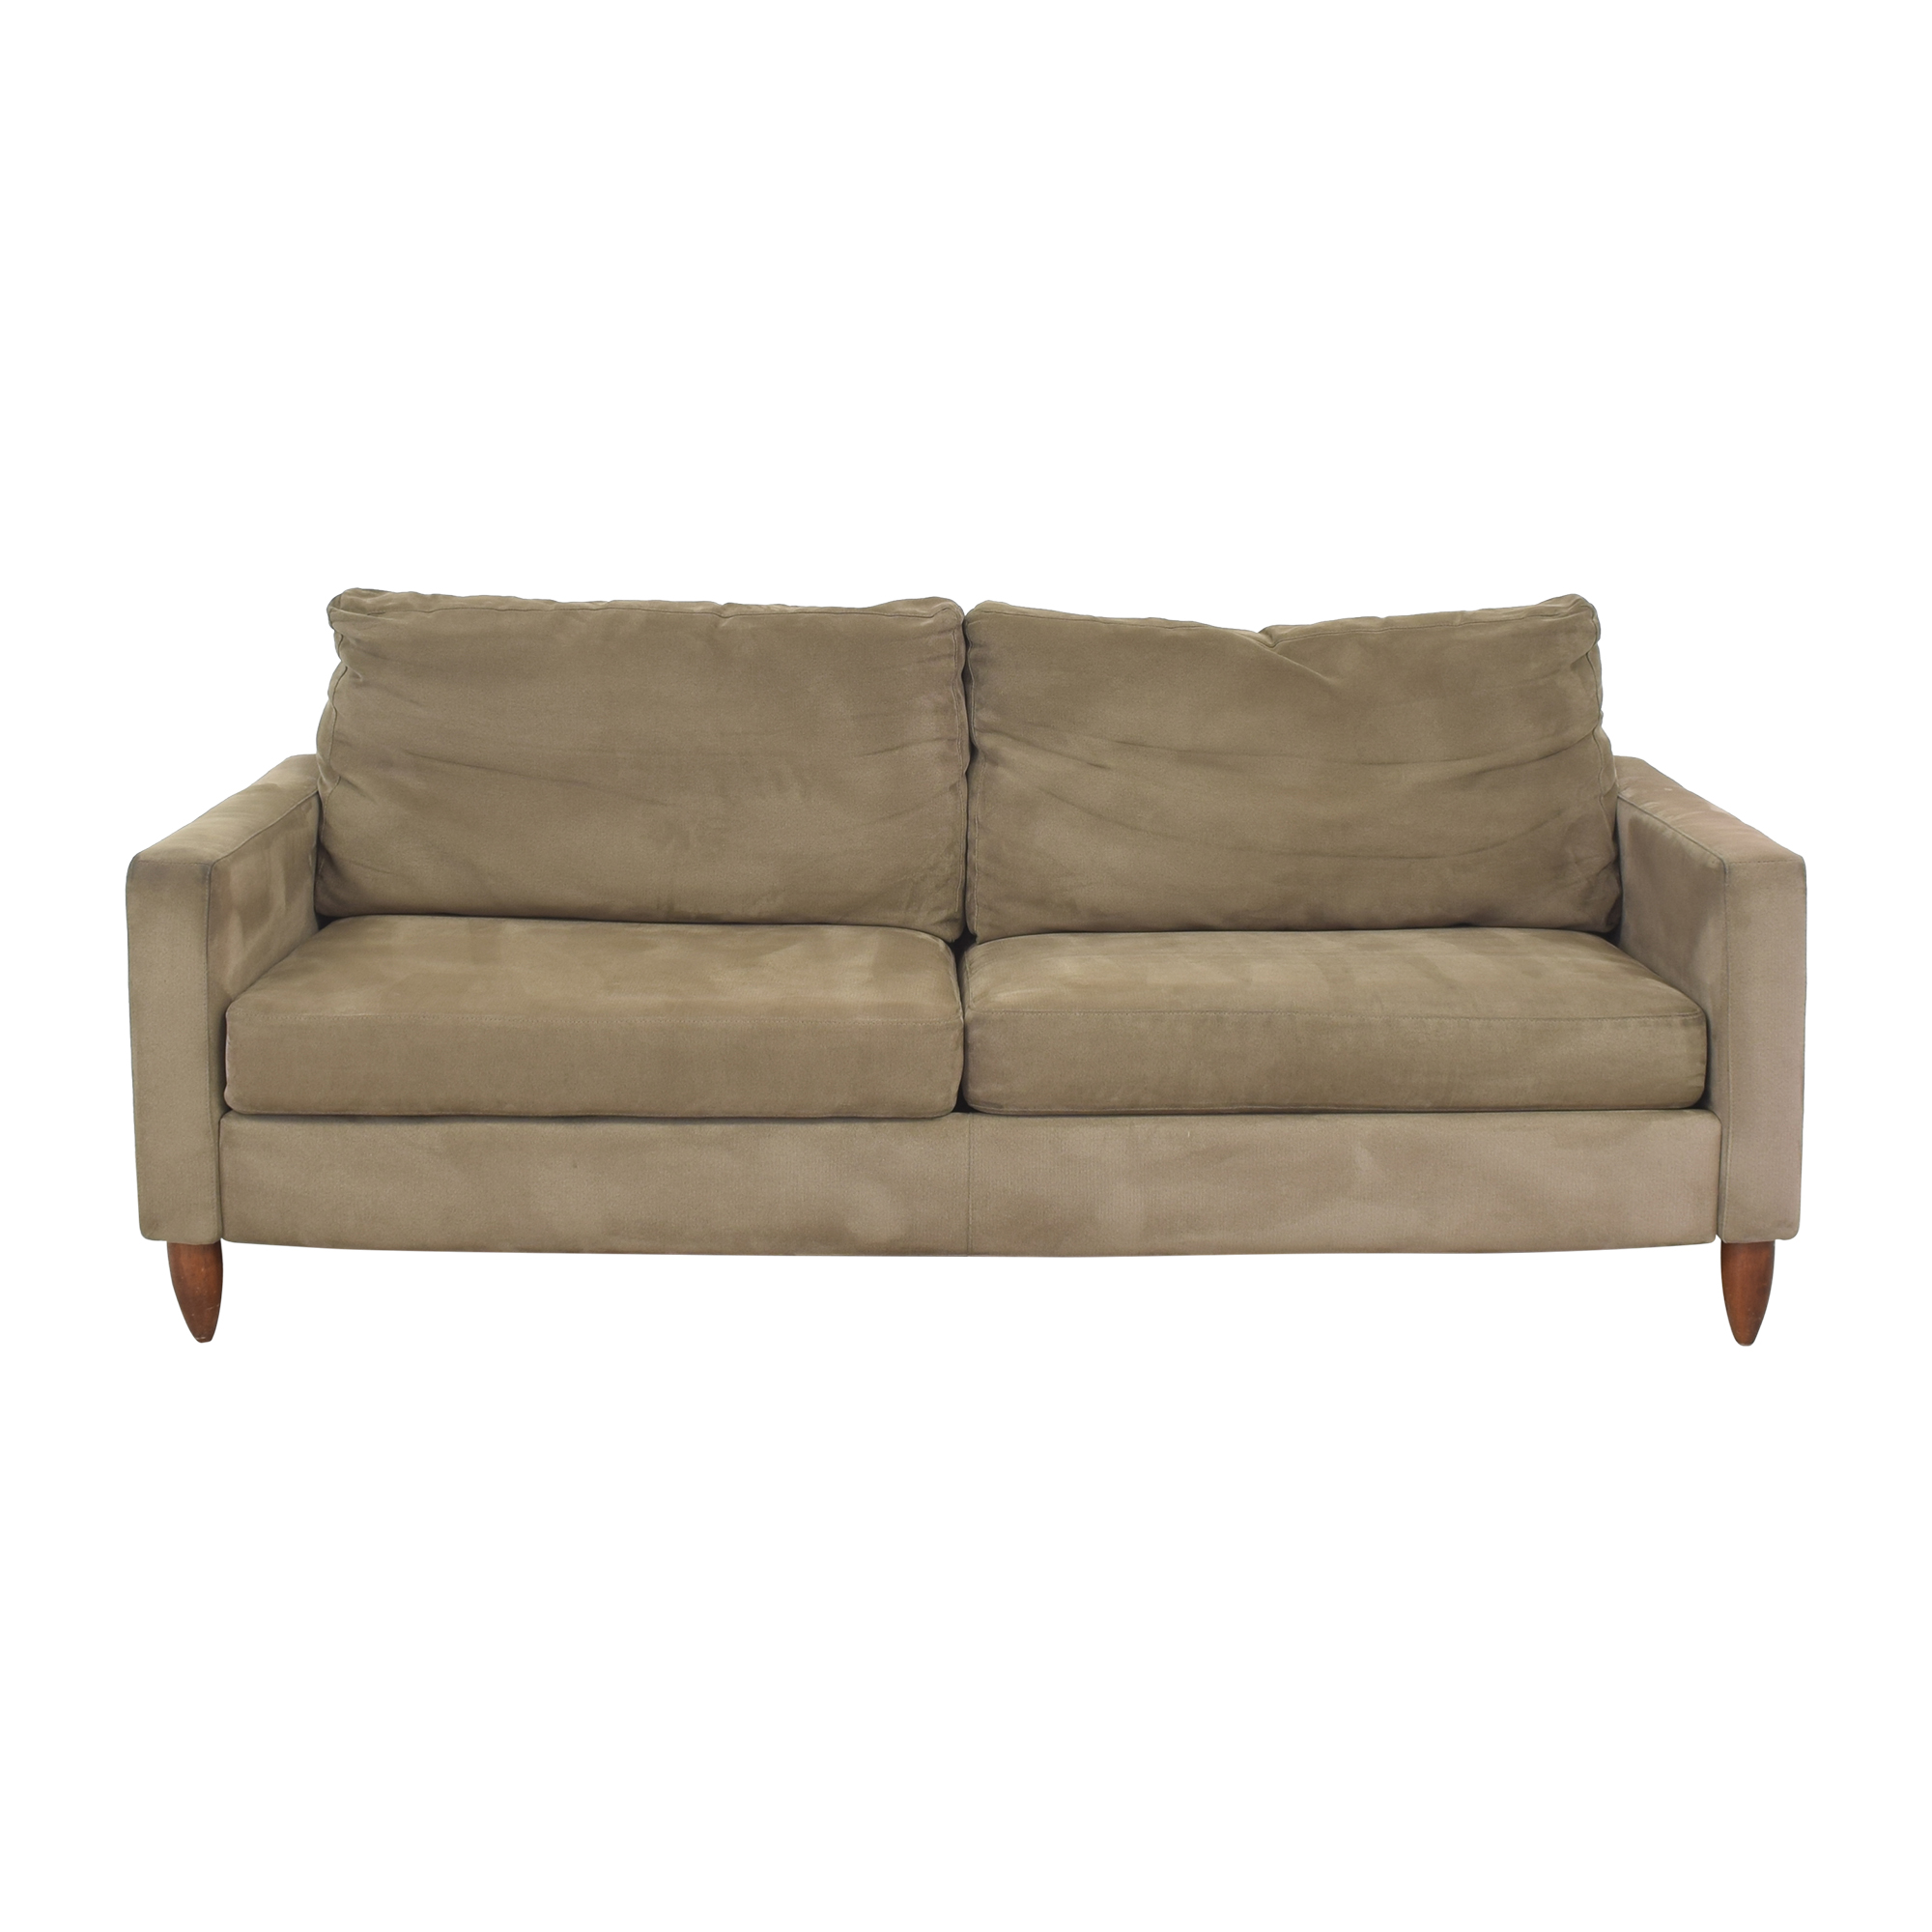 Crate & Barrel Crate & Barrel Axis Sofa coupon